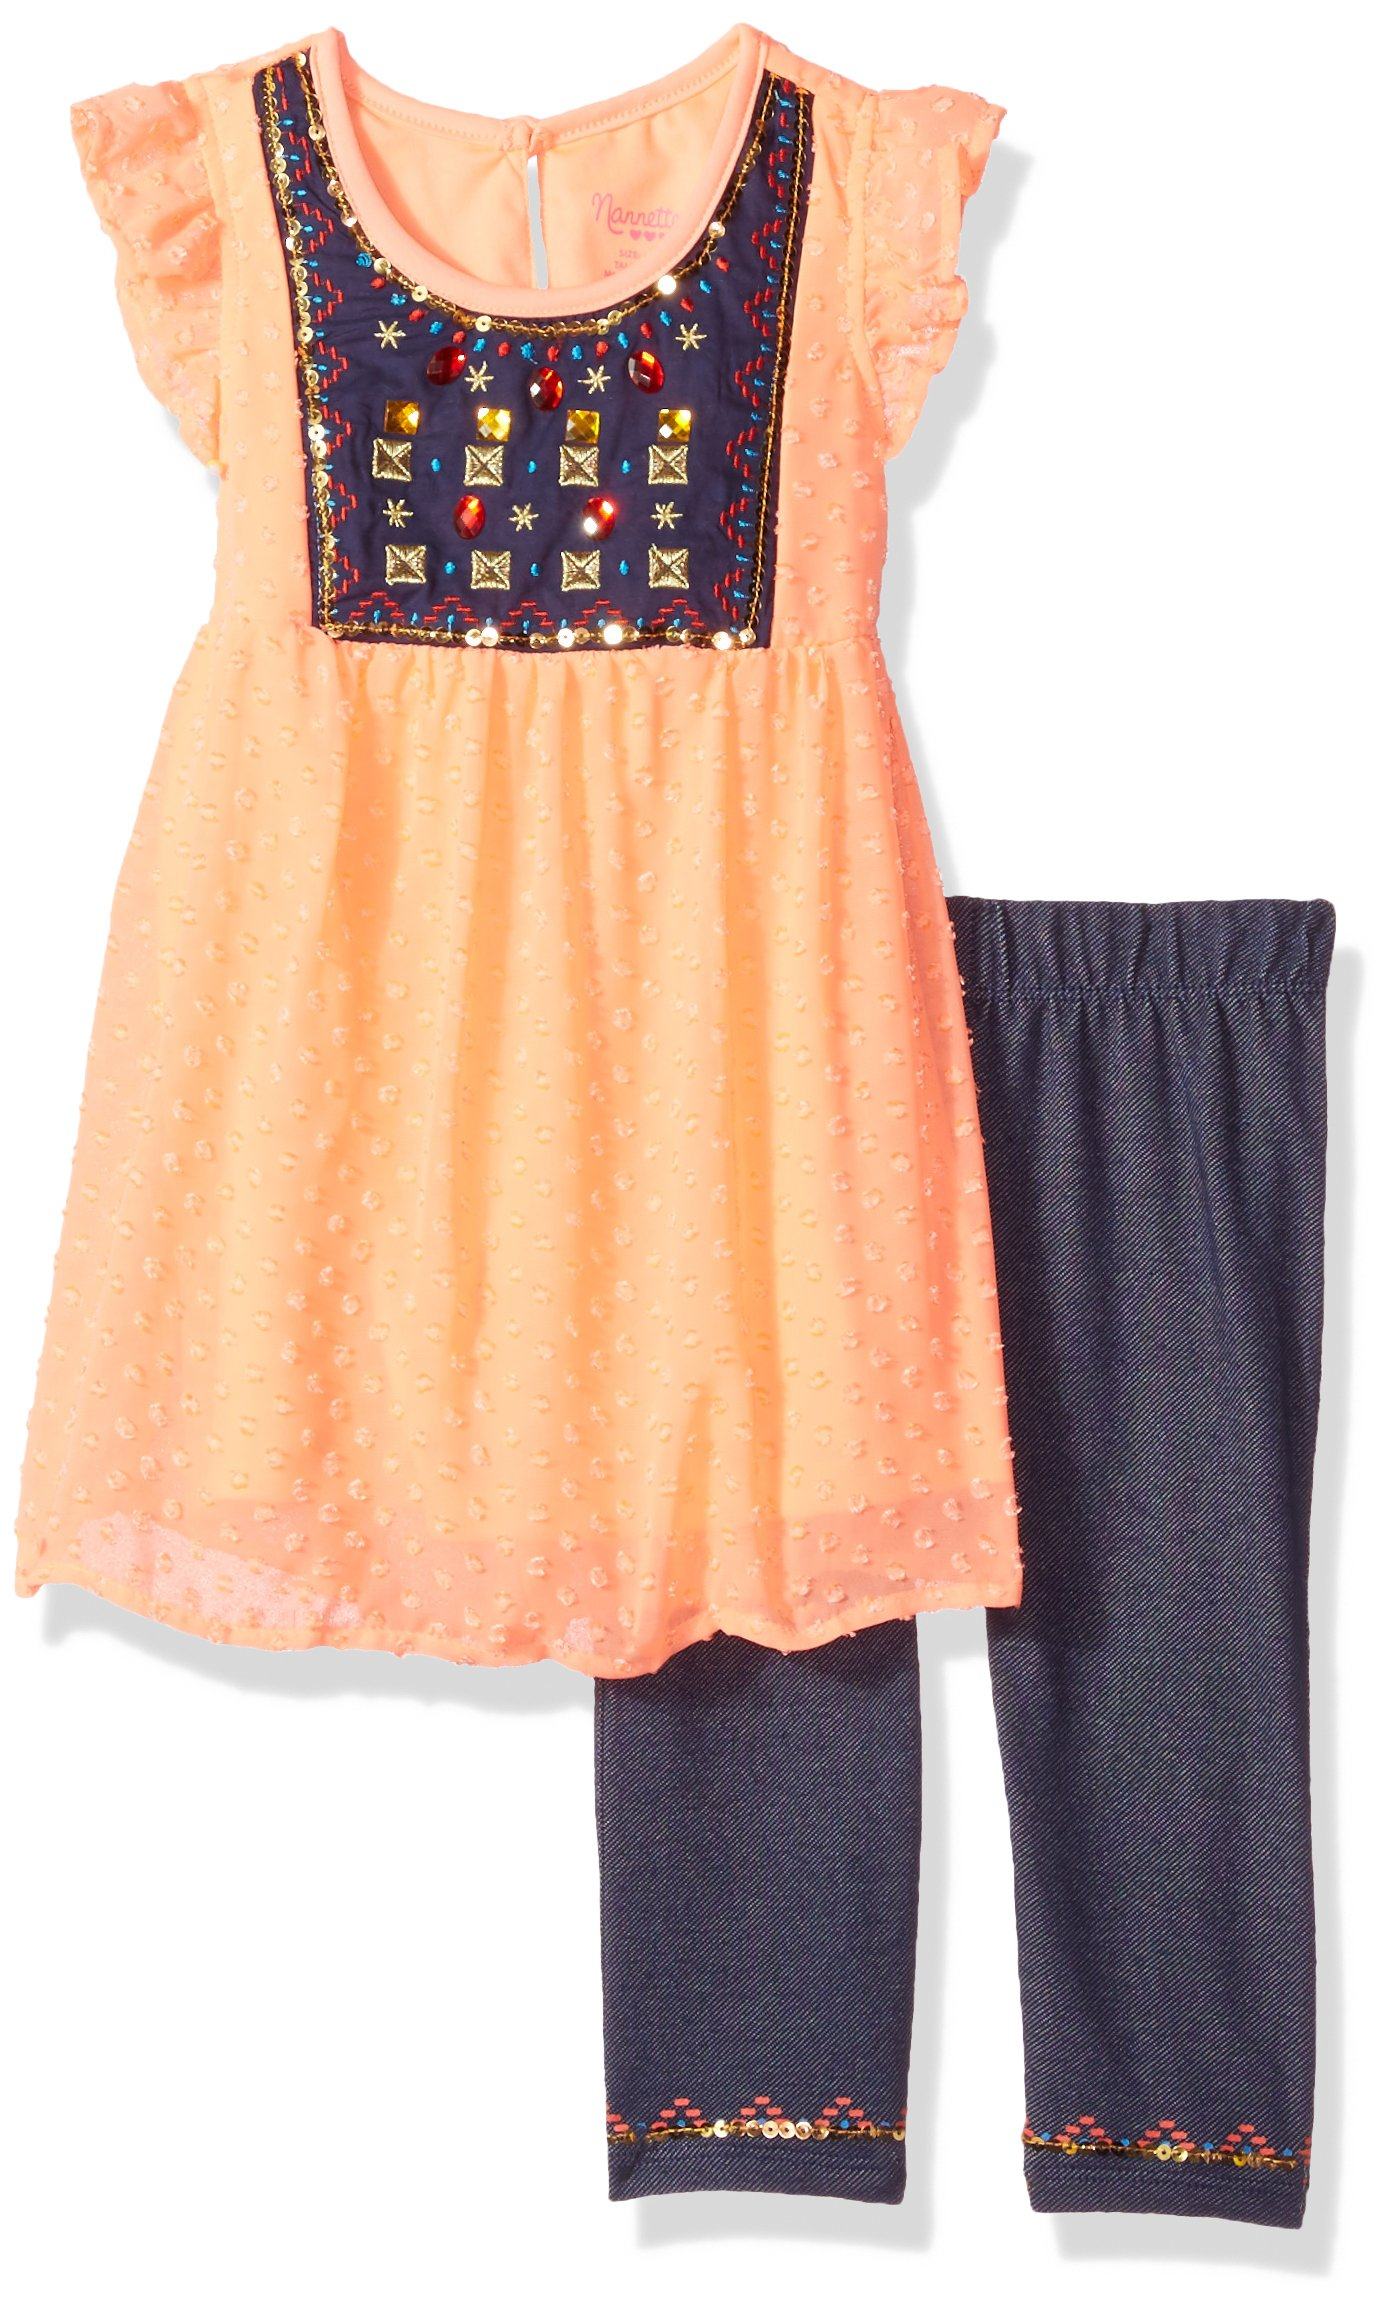 Nannette Toddler Girls' 2 Piece Swiss Dot Top with Embelished Rhinestones and Knit Denim Jegging, Coral, 4T